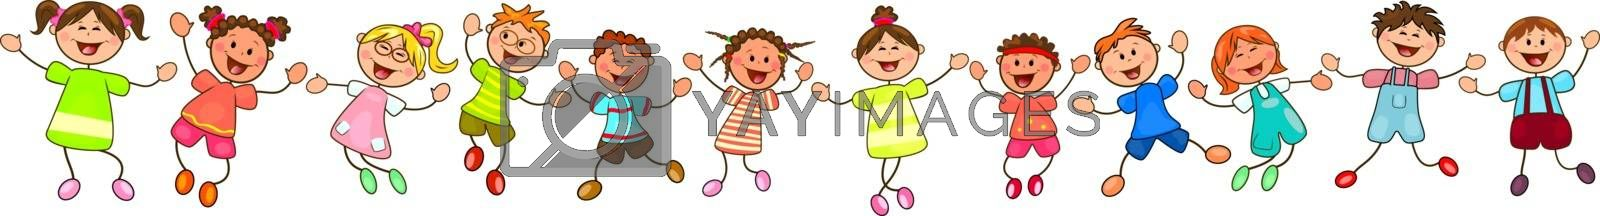 Group of cheerful, smiling children on a white background. Cartoon joyful children.